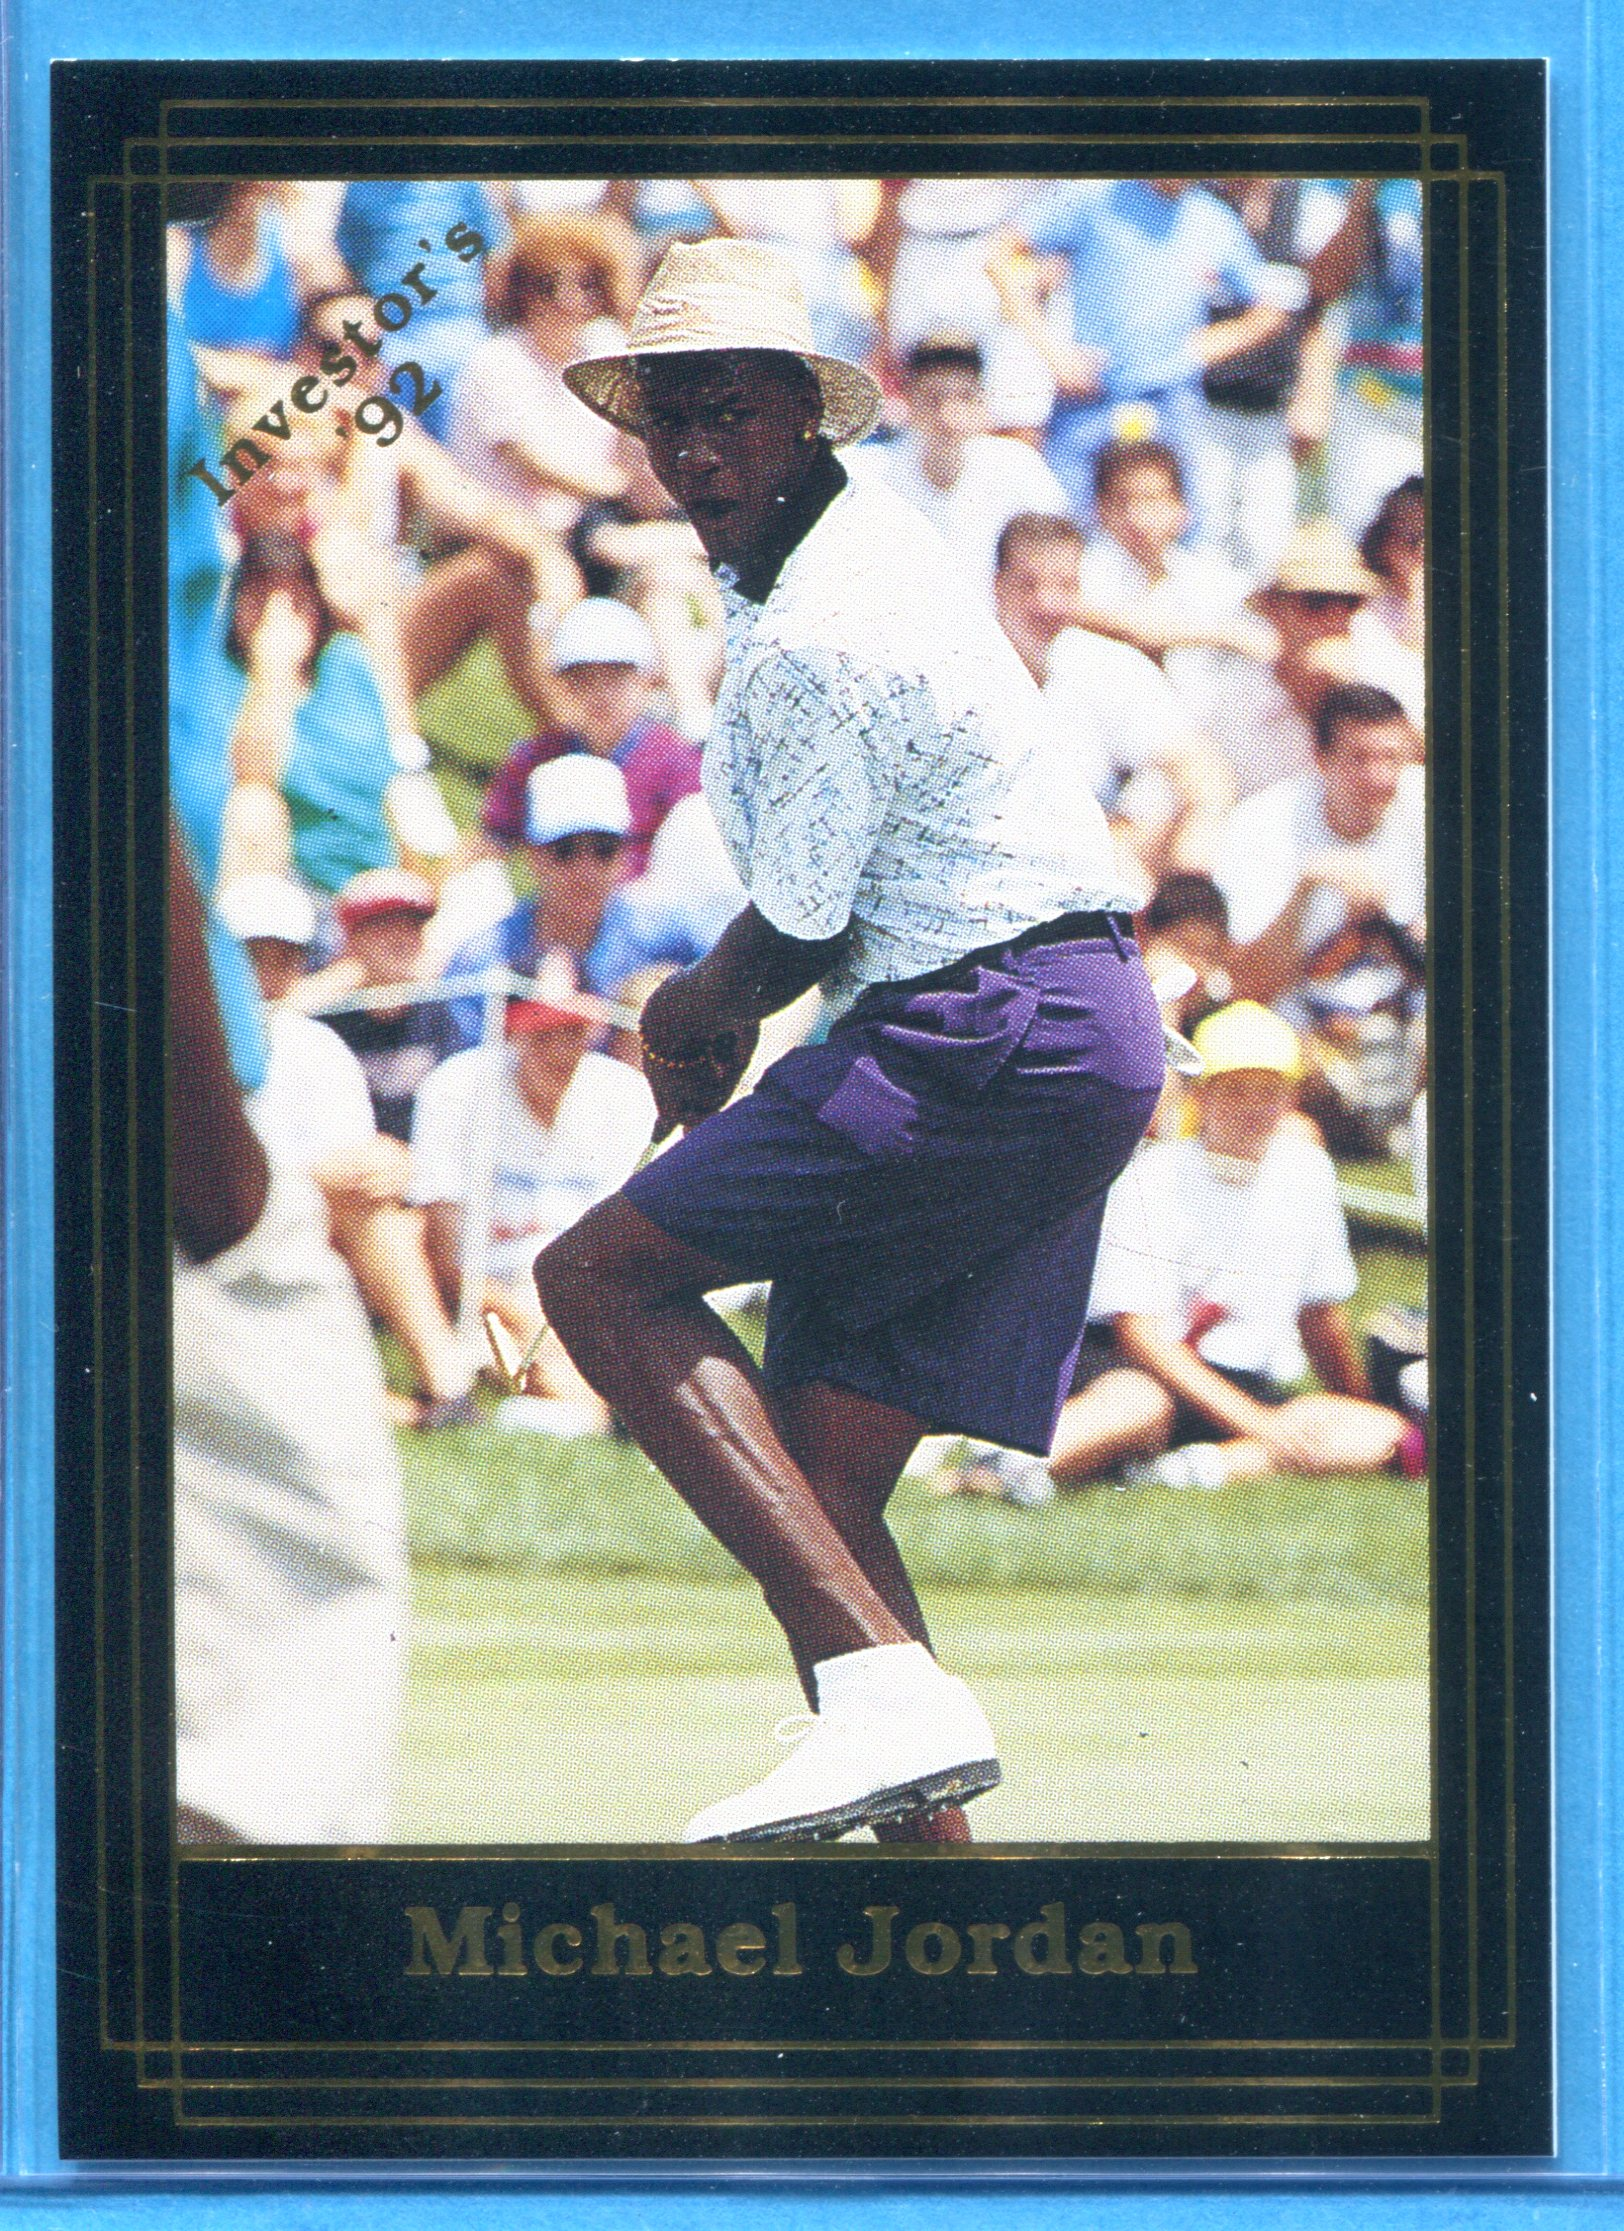 1992 Investor's Journal Black Gold Golf Card #14 Michael Jordan